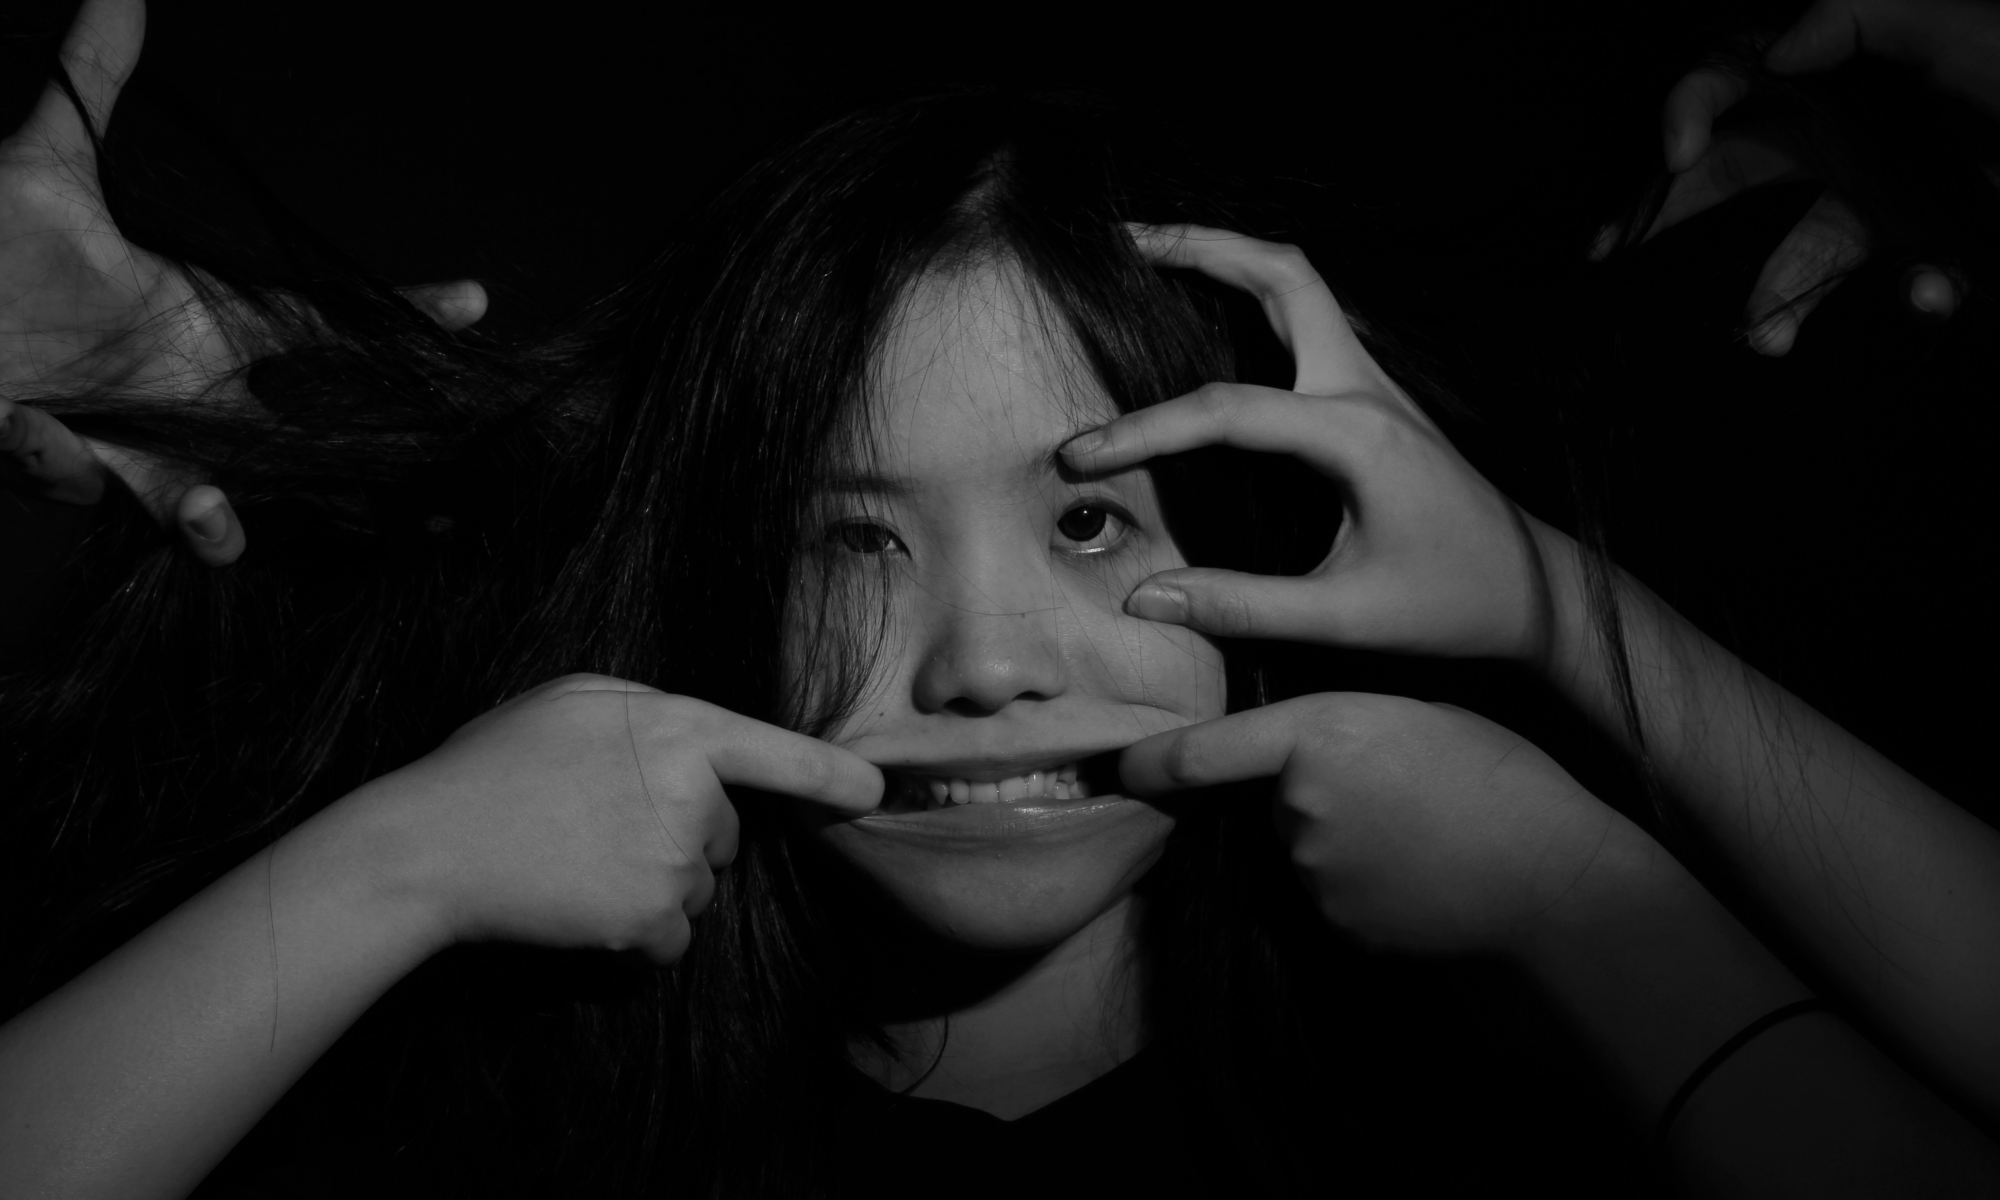 Grayscale photography of insecure asian woman